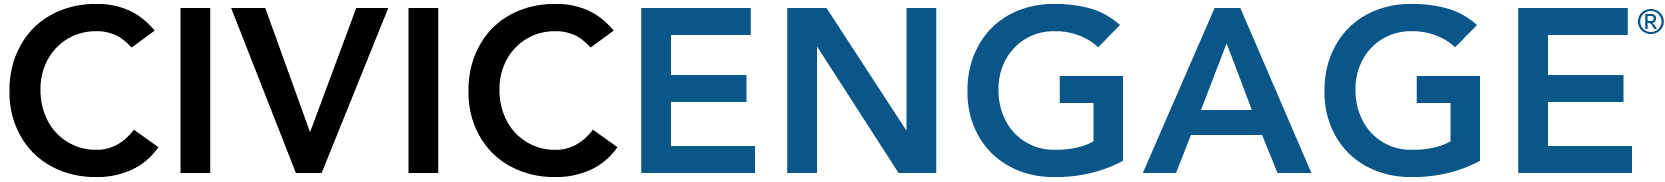 CivicEngage Wordmark